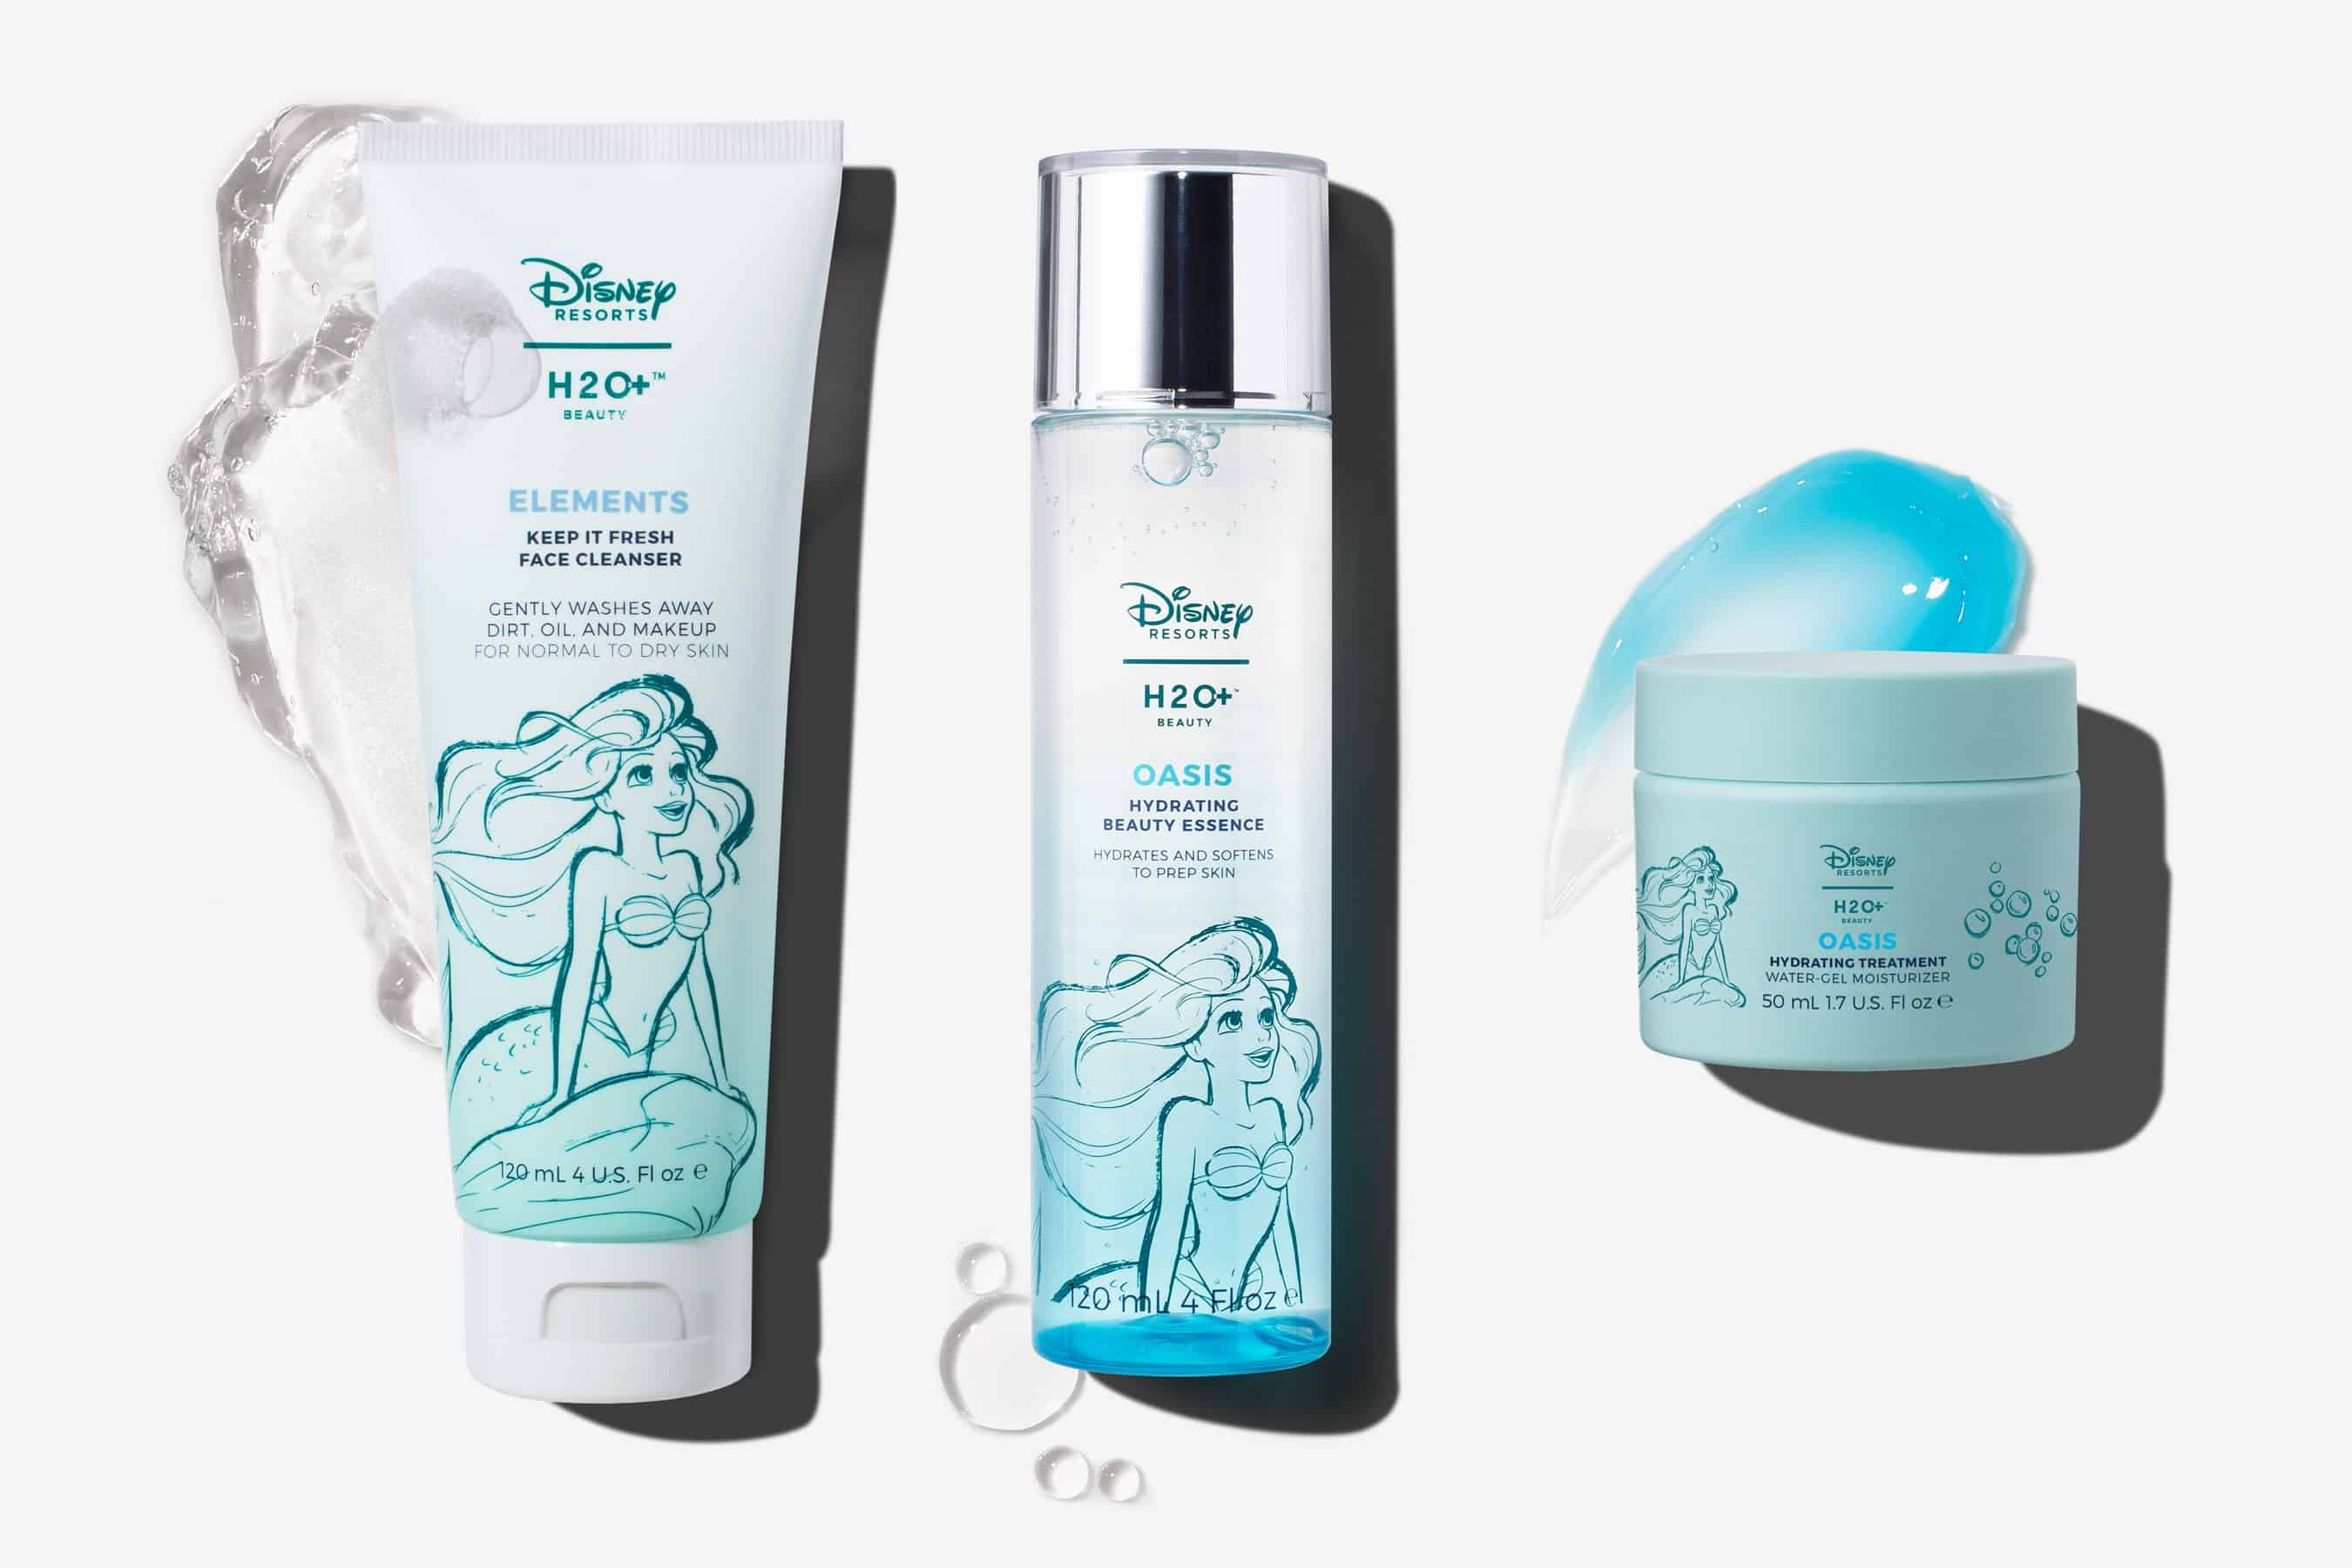 H2O+ Little Mermaid Skin-Care Collection – món quà nhỏ cho nàng từ team Disney